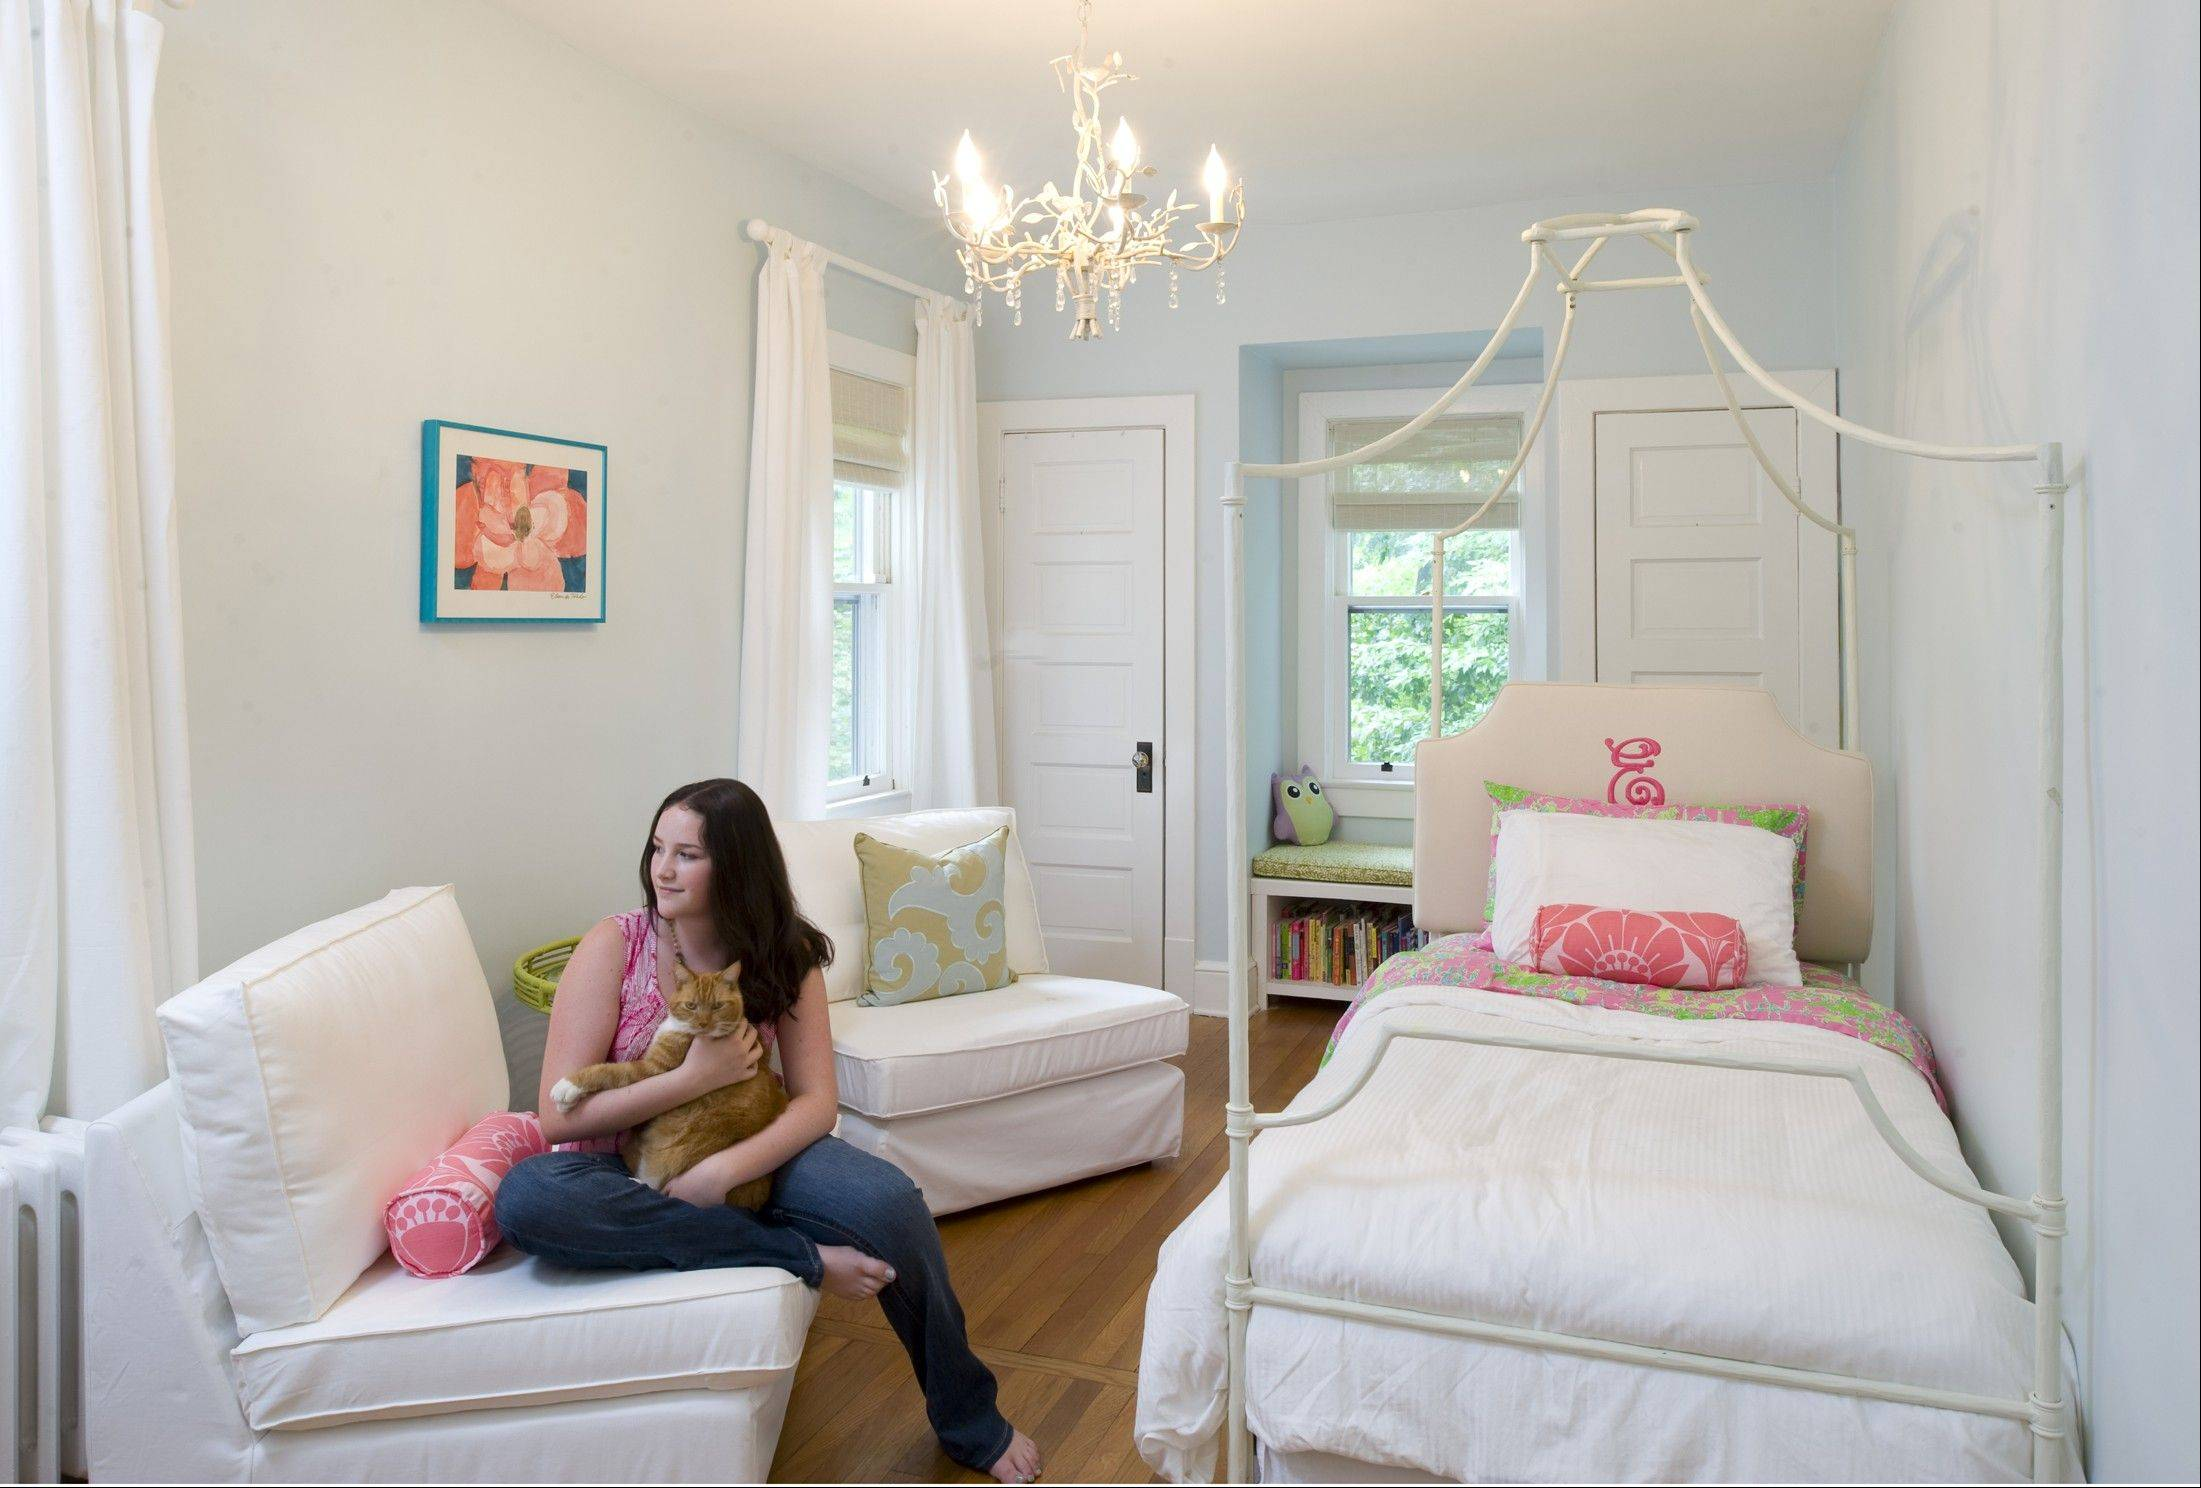 Design Tricks To Make Small Rooms Feel Bigger